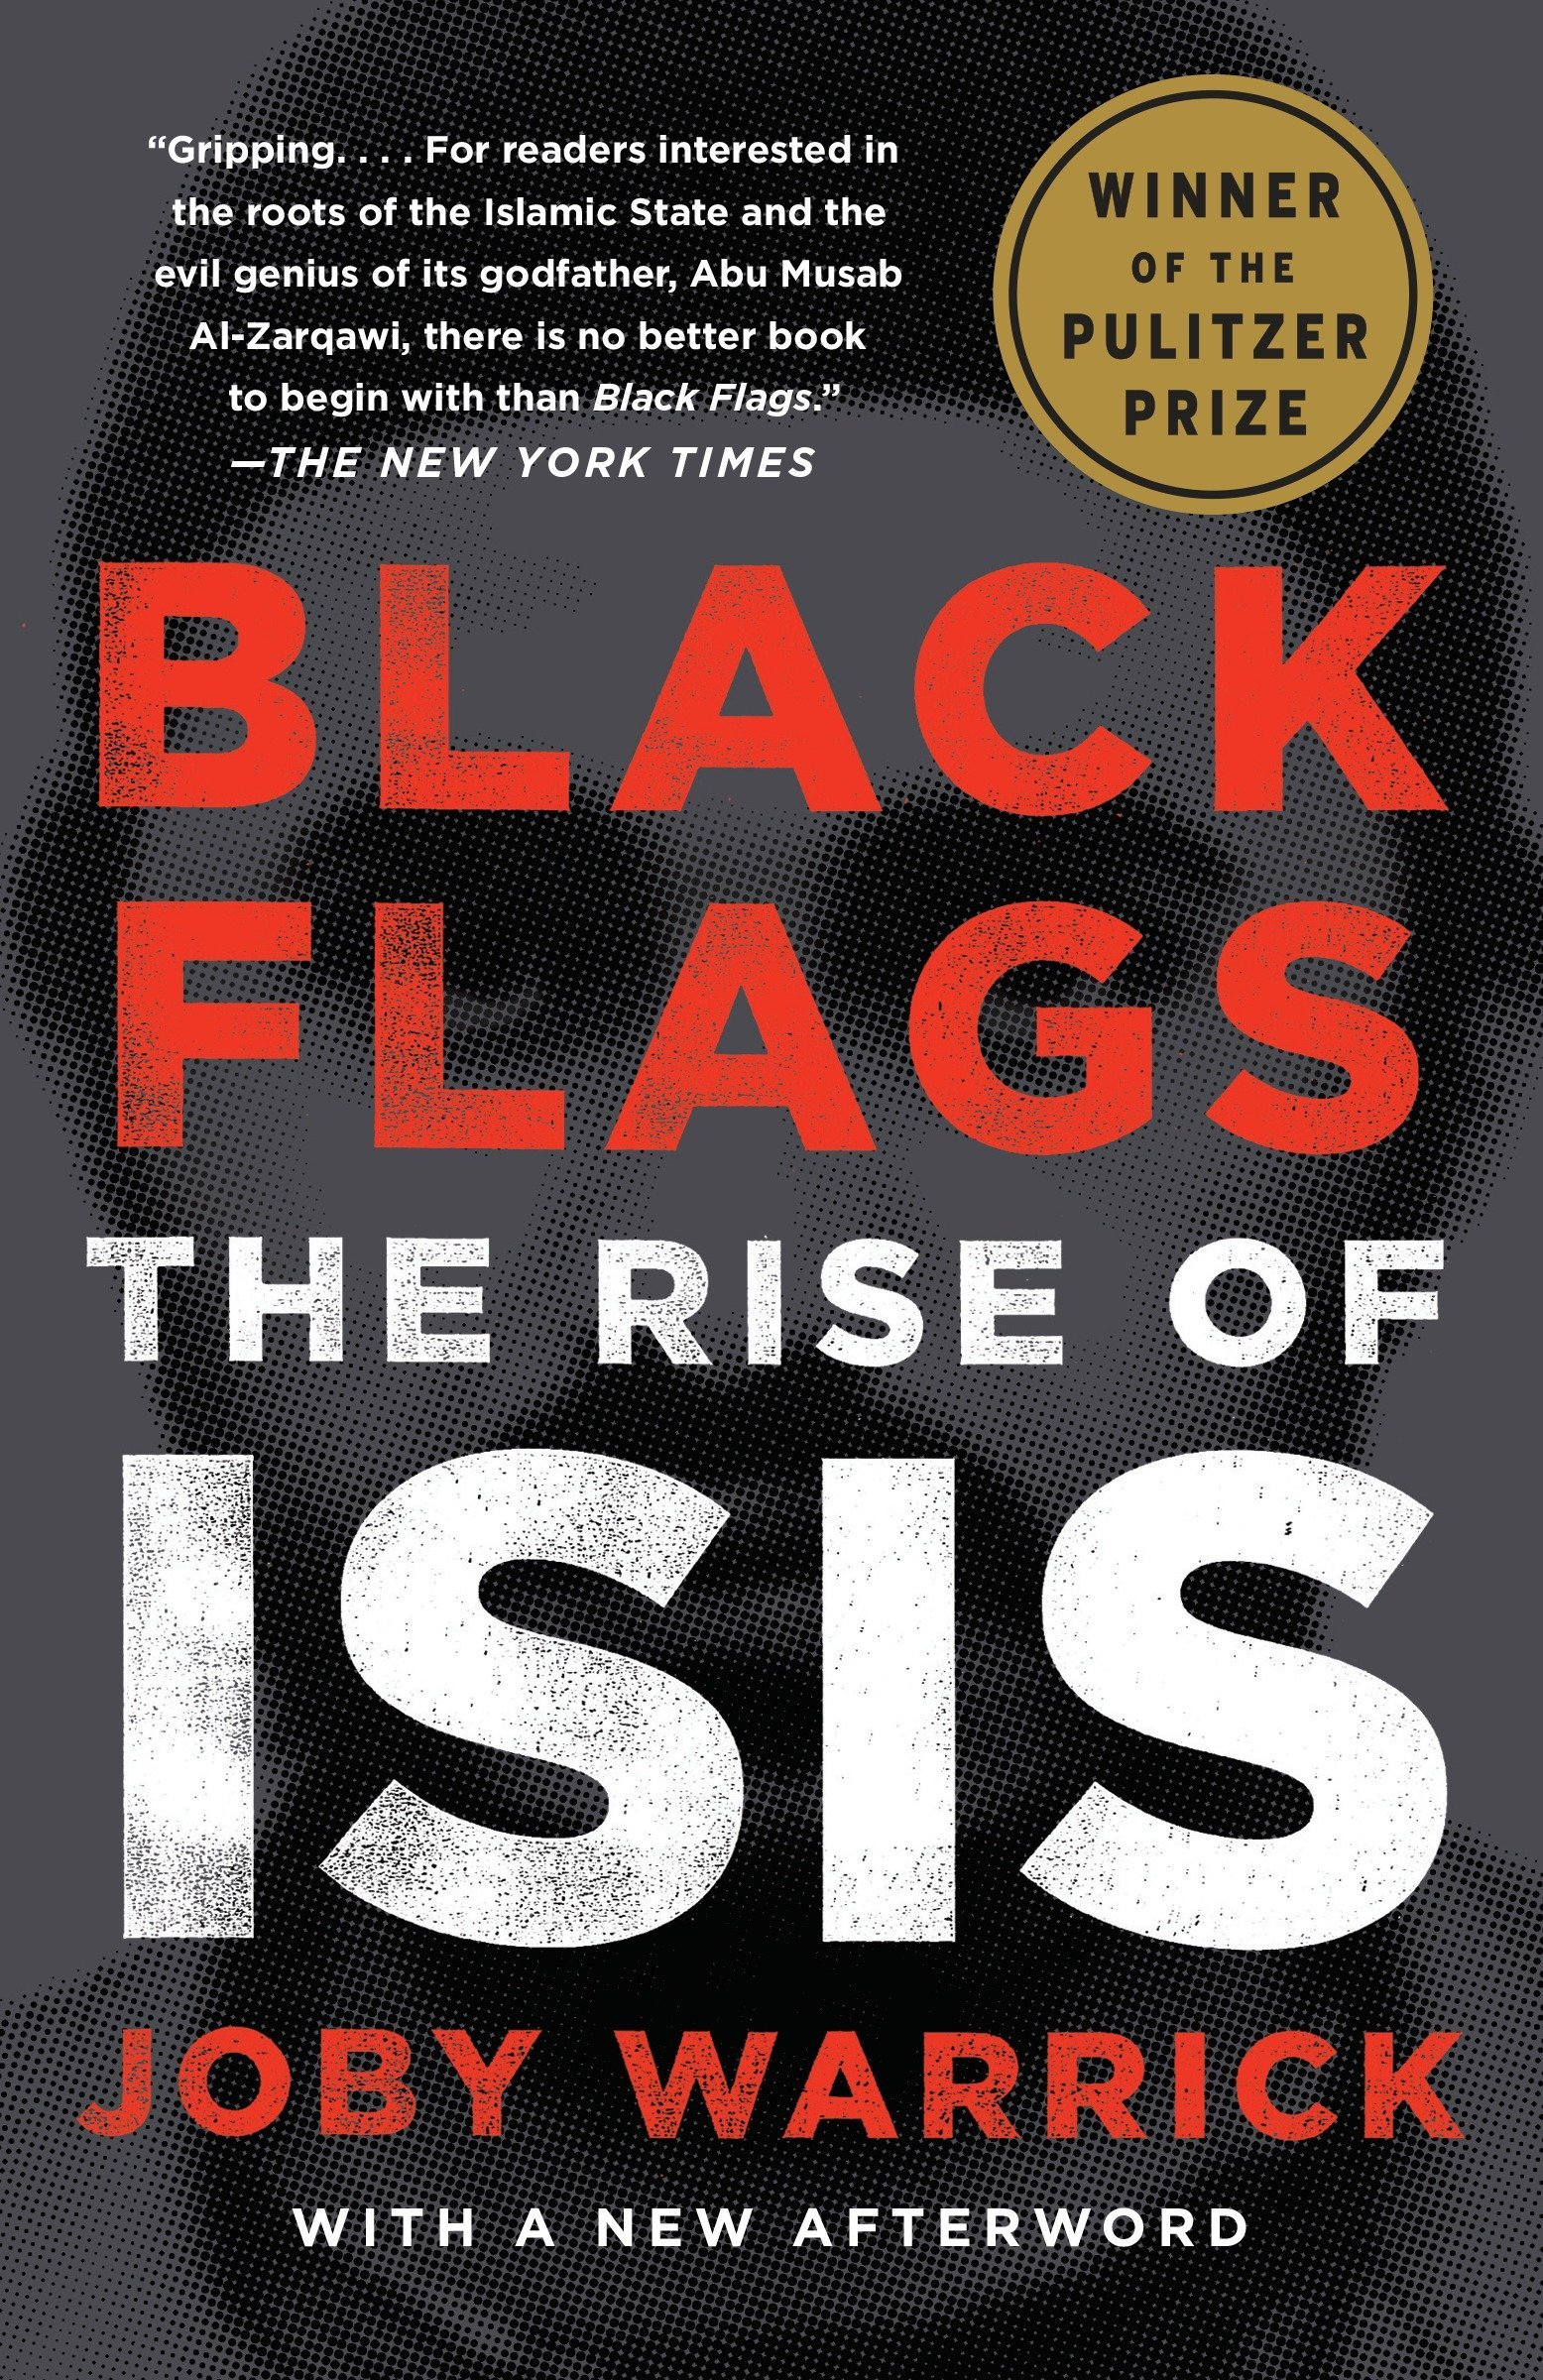 The Terror Years: From al-Qaeda to the Islamic State mobi download book